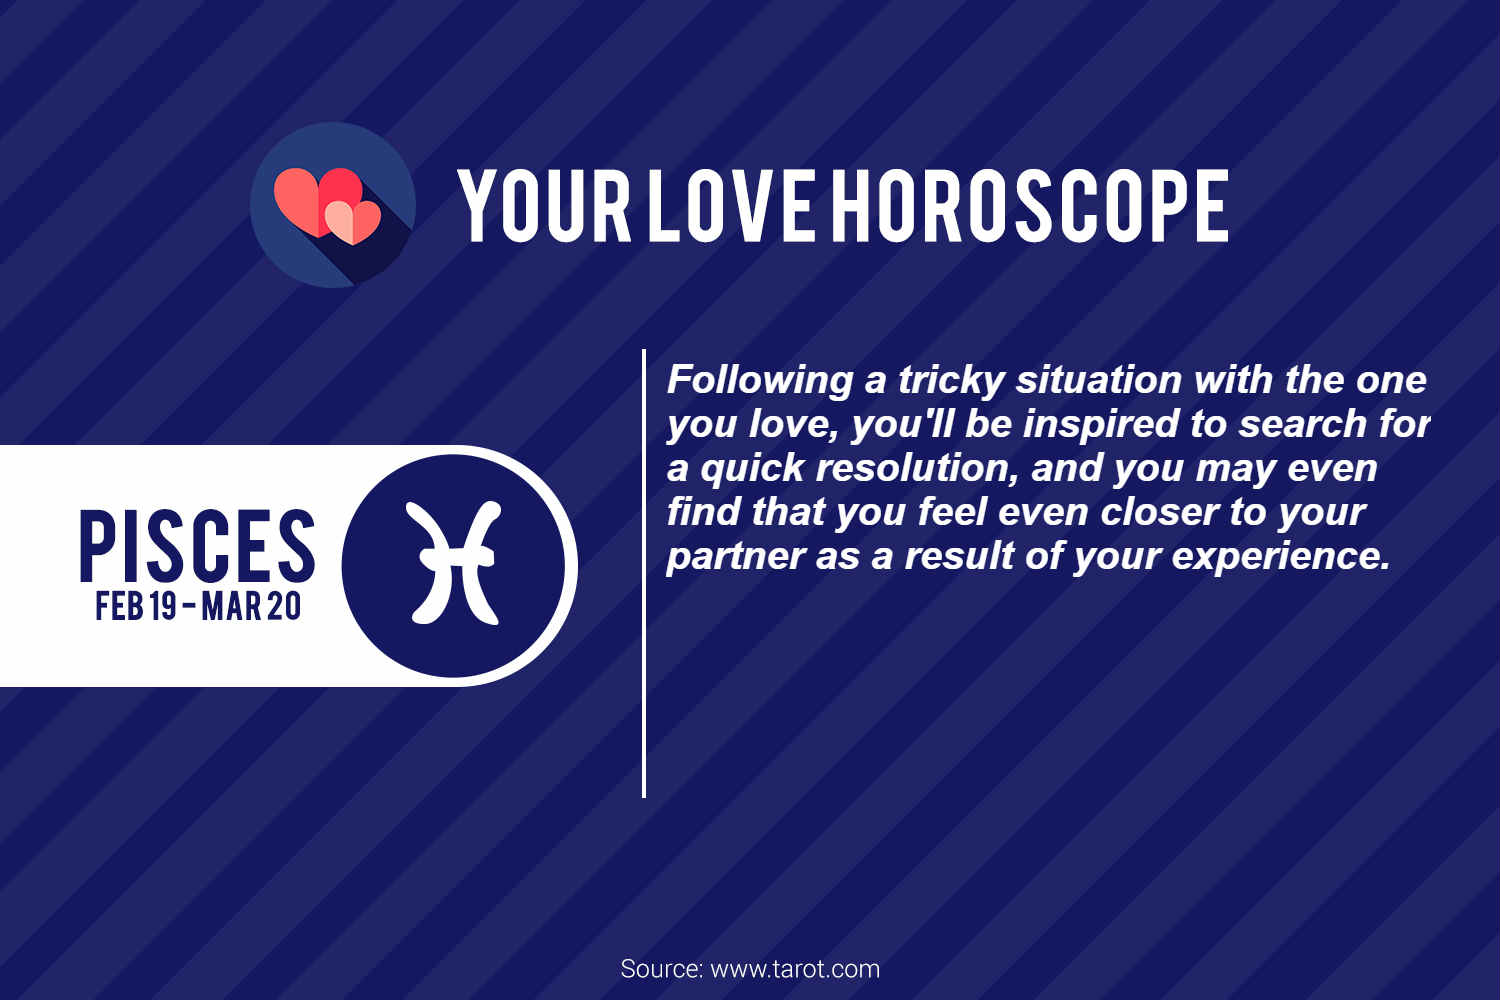 pisces-love-horoscope-image-for-inuth